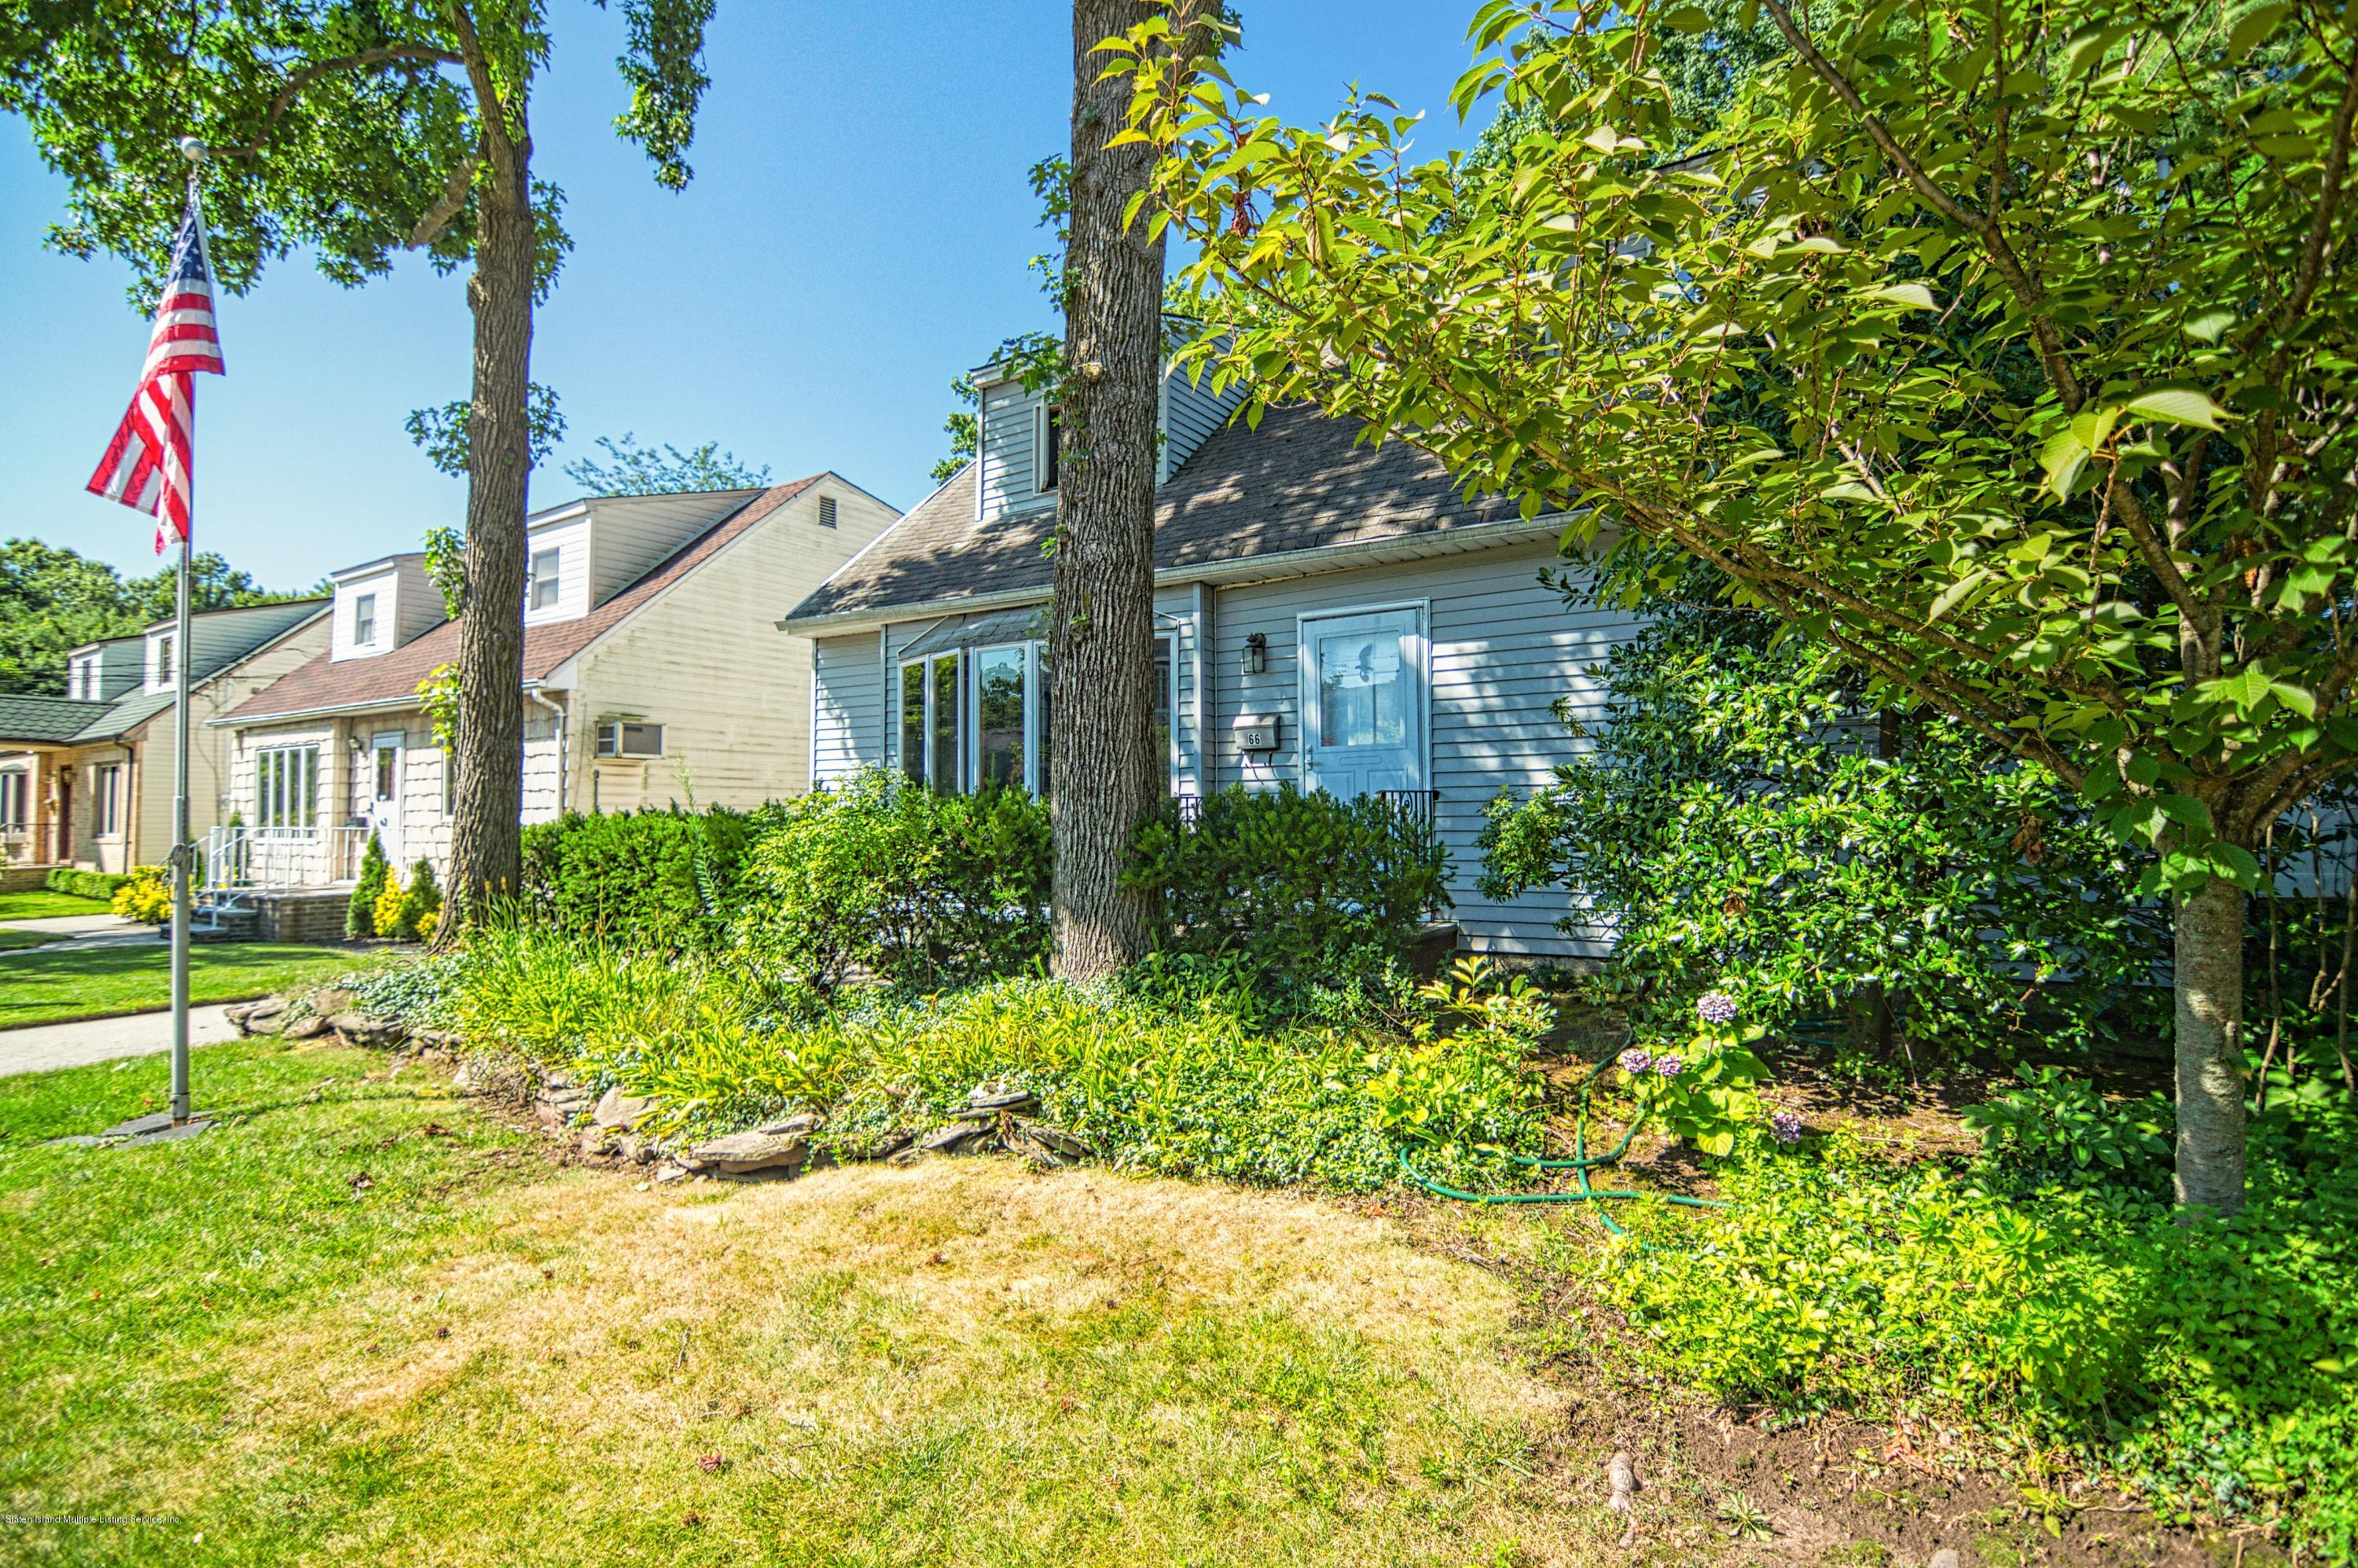 Single Family - Detached 66 Shafter Avenue  Staten Island, NY 10308, MLS-1131442-21